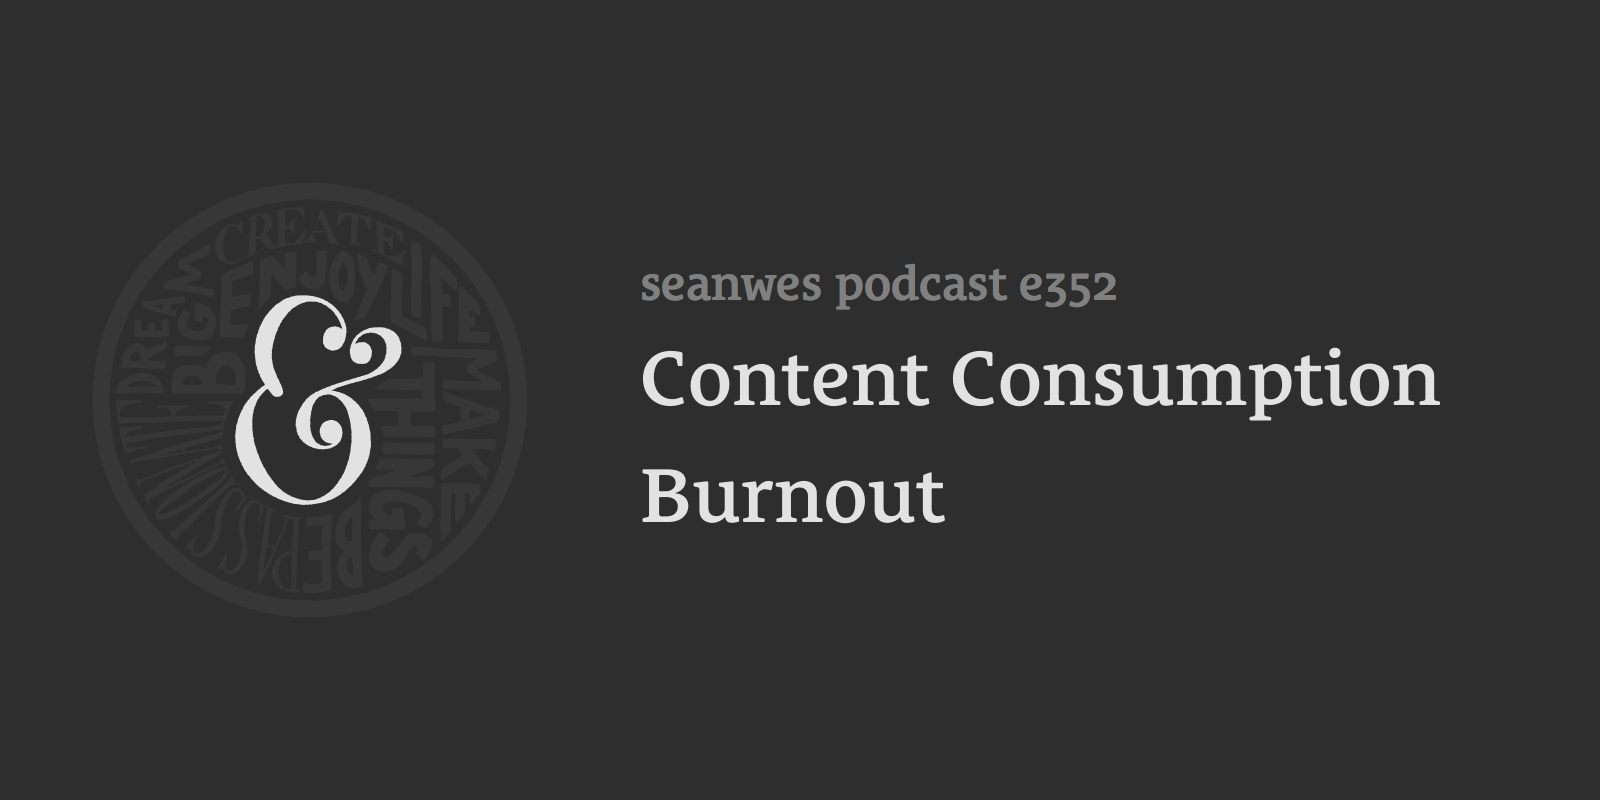 Content Consumption Burnout